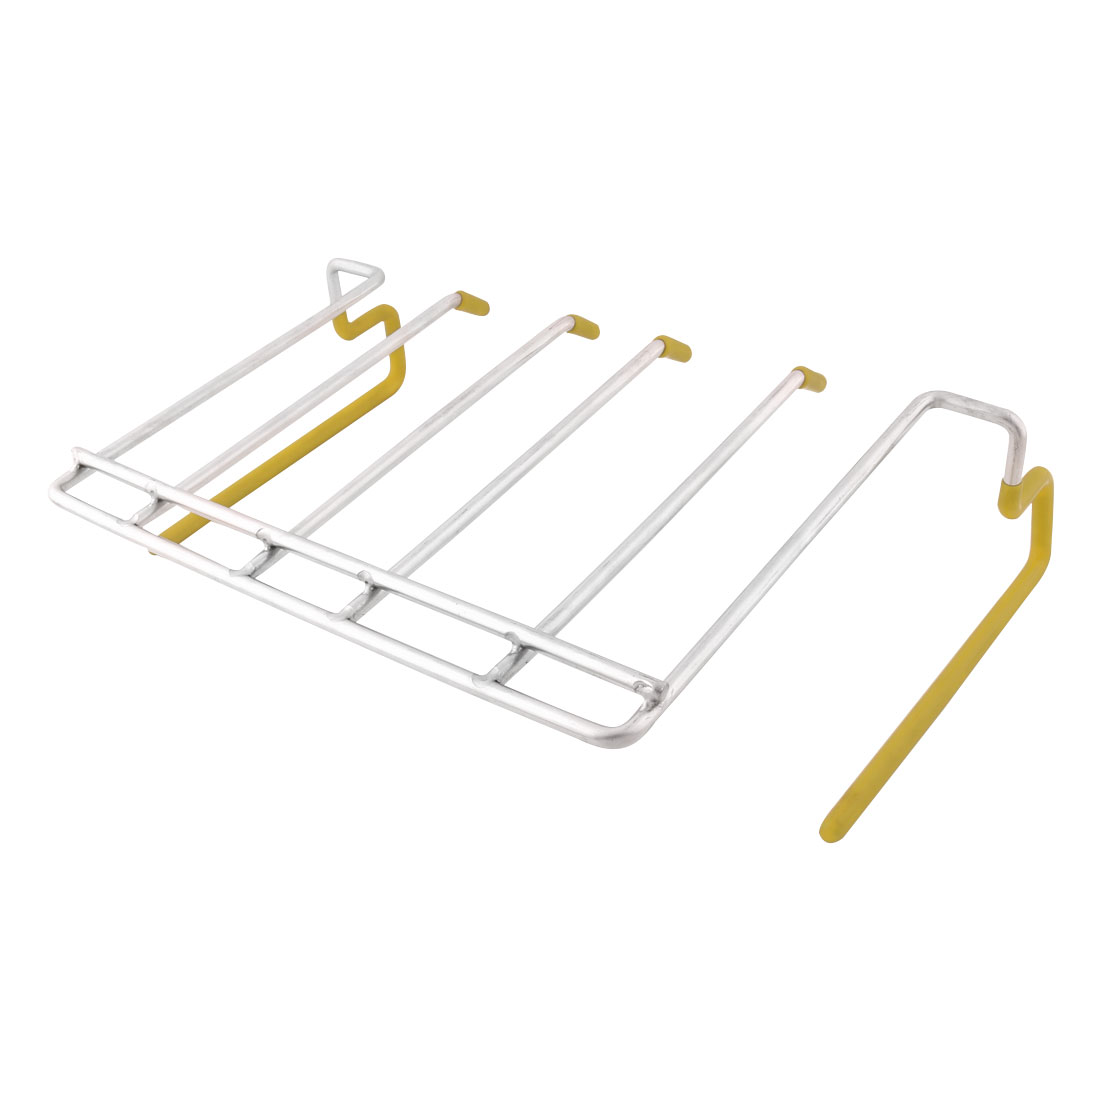 Bars 304 Stainless Steel 3 Rows Wine Glass Stemware Rack 29.3cm x 20cm x 7.5cm - image 5 of 6